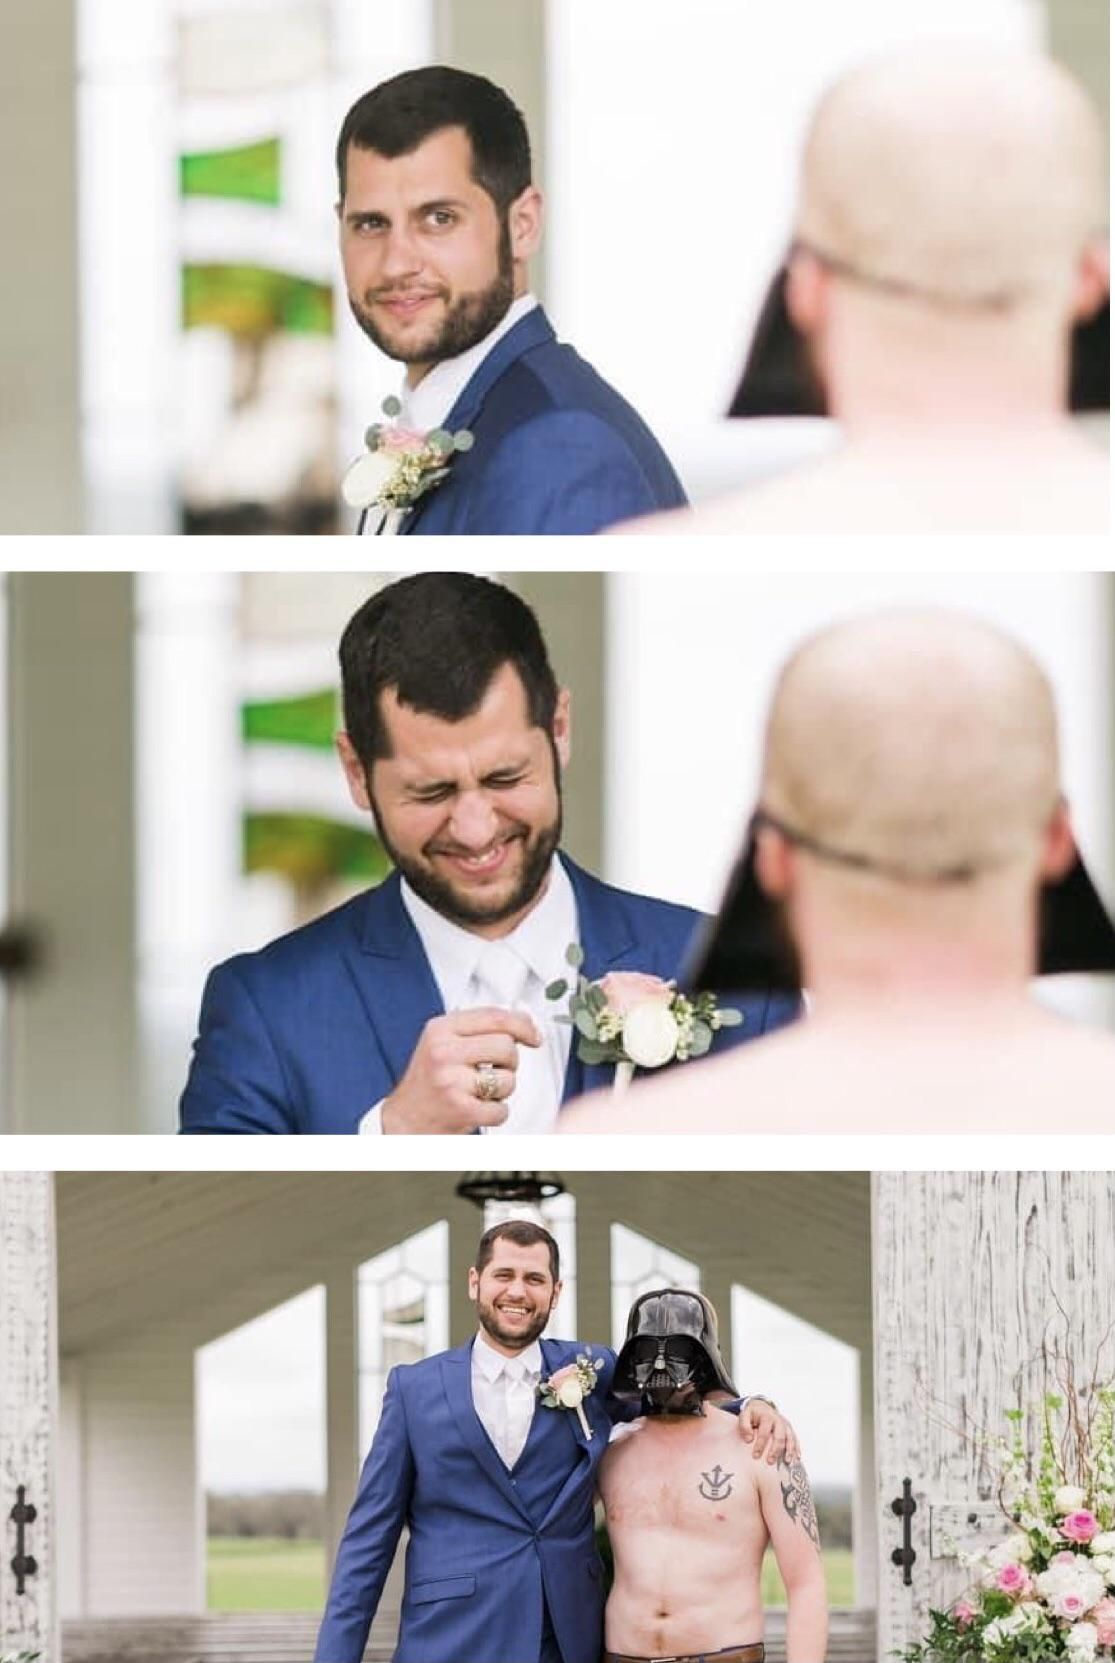 A friend from college got married last week and his wife sent the best man out for the first look. Here's his reaction: